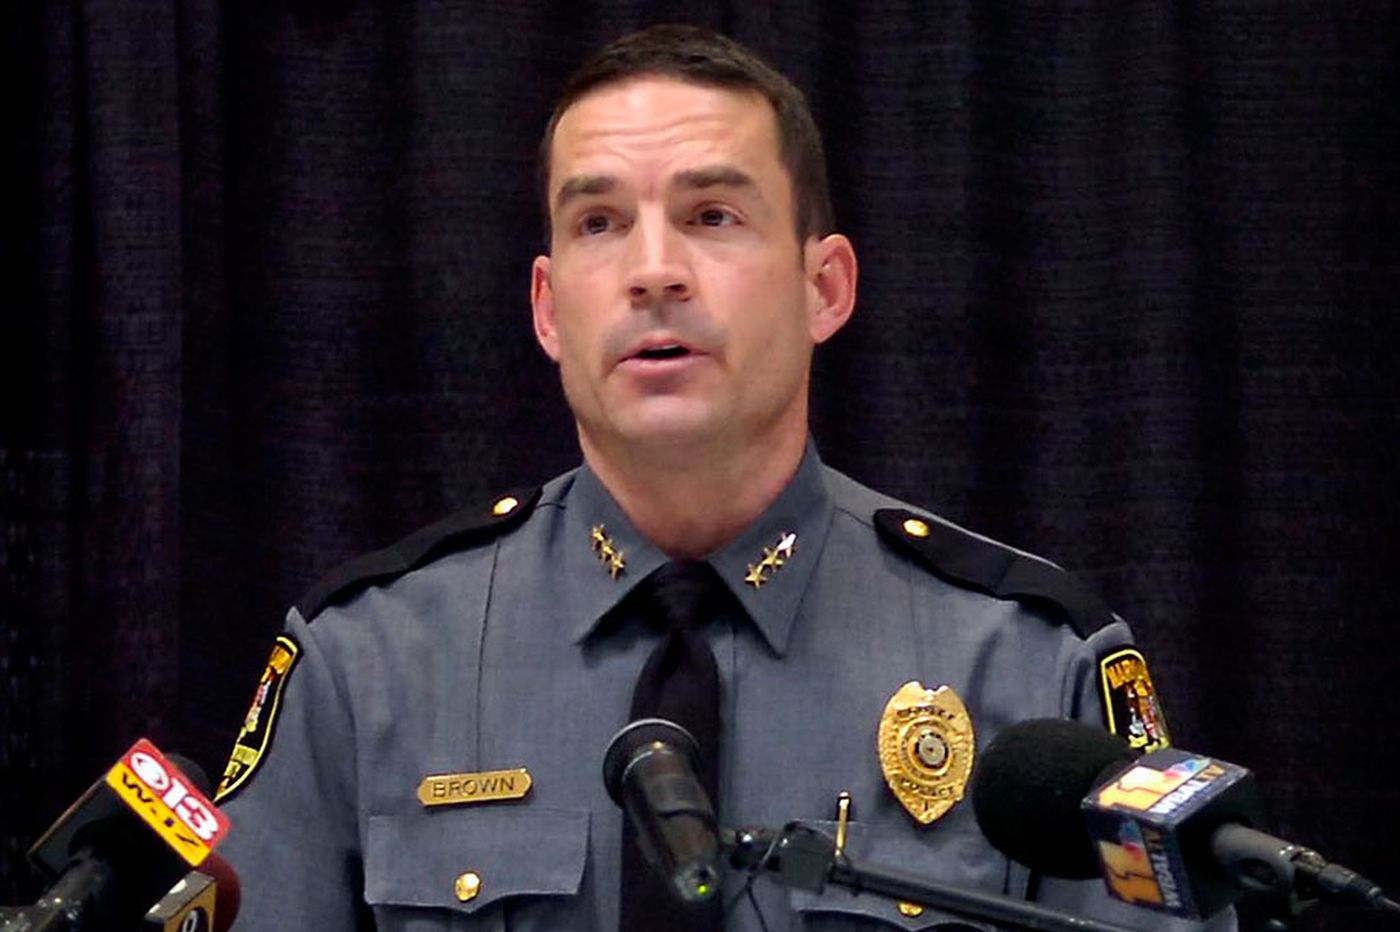 State Police nominee faces new controversy